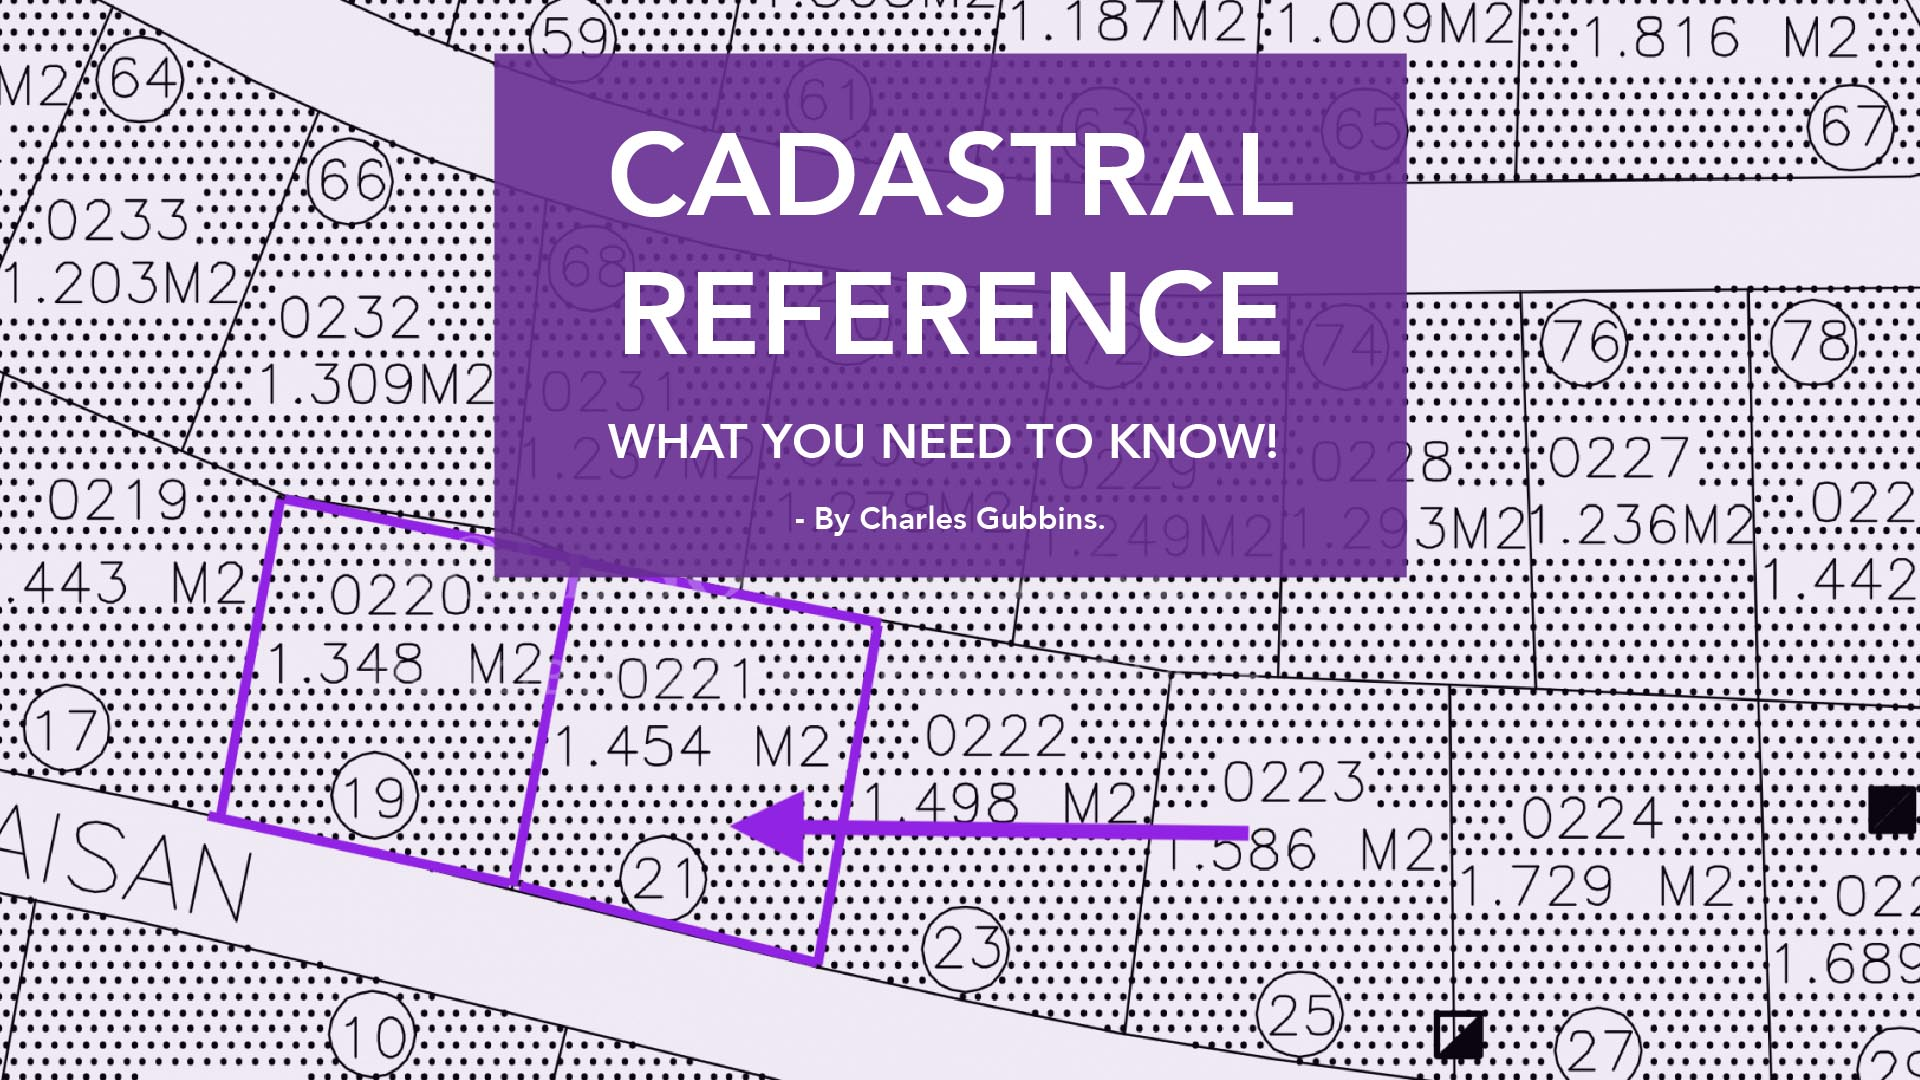 What is the Cadastral Reference?